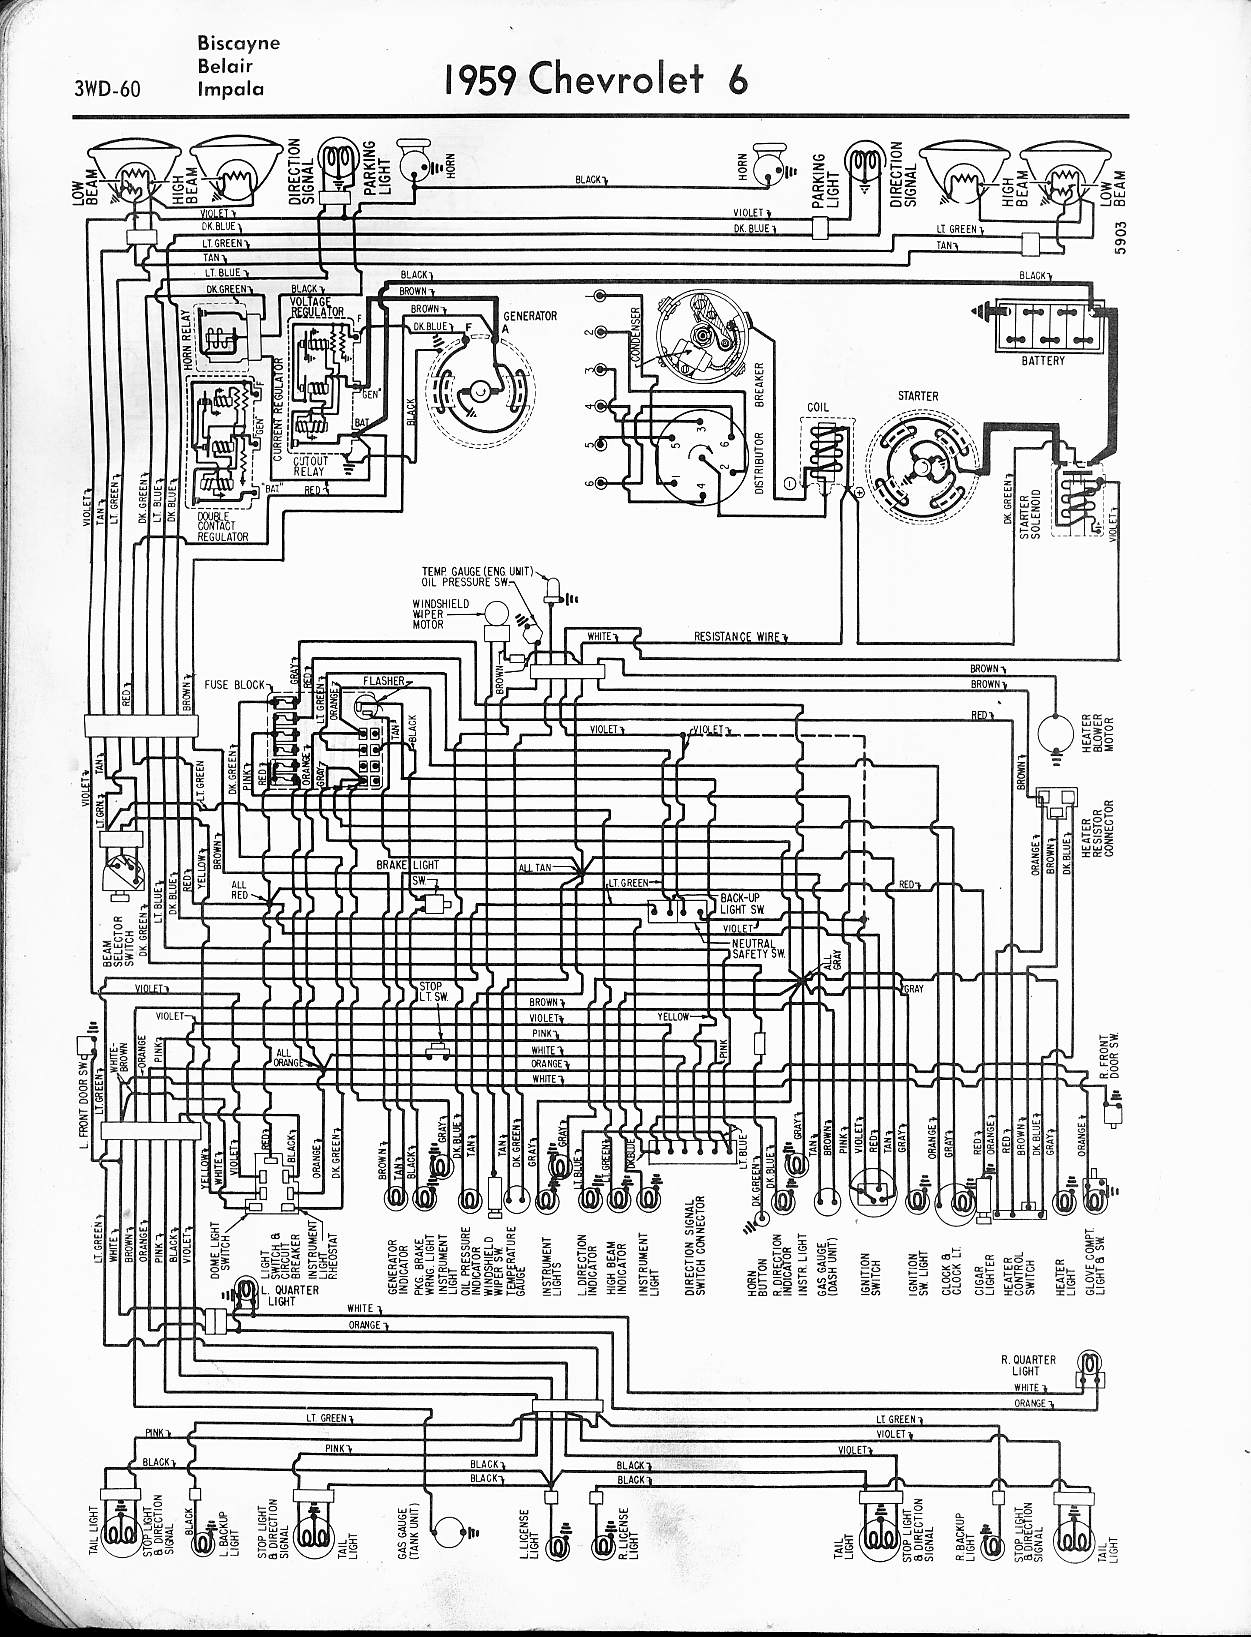 57 65 chevy wiring diagrams rh oldcarmanualproject com 89 Chevy Truck Wiring Diagram 89 Chevy Truck Wiring Diagram